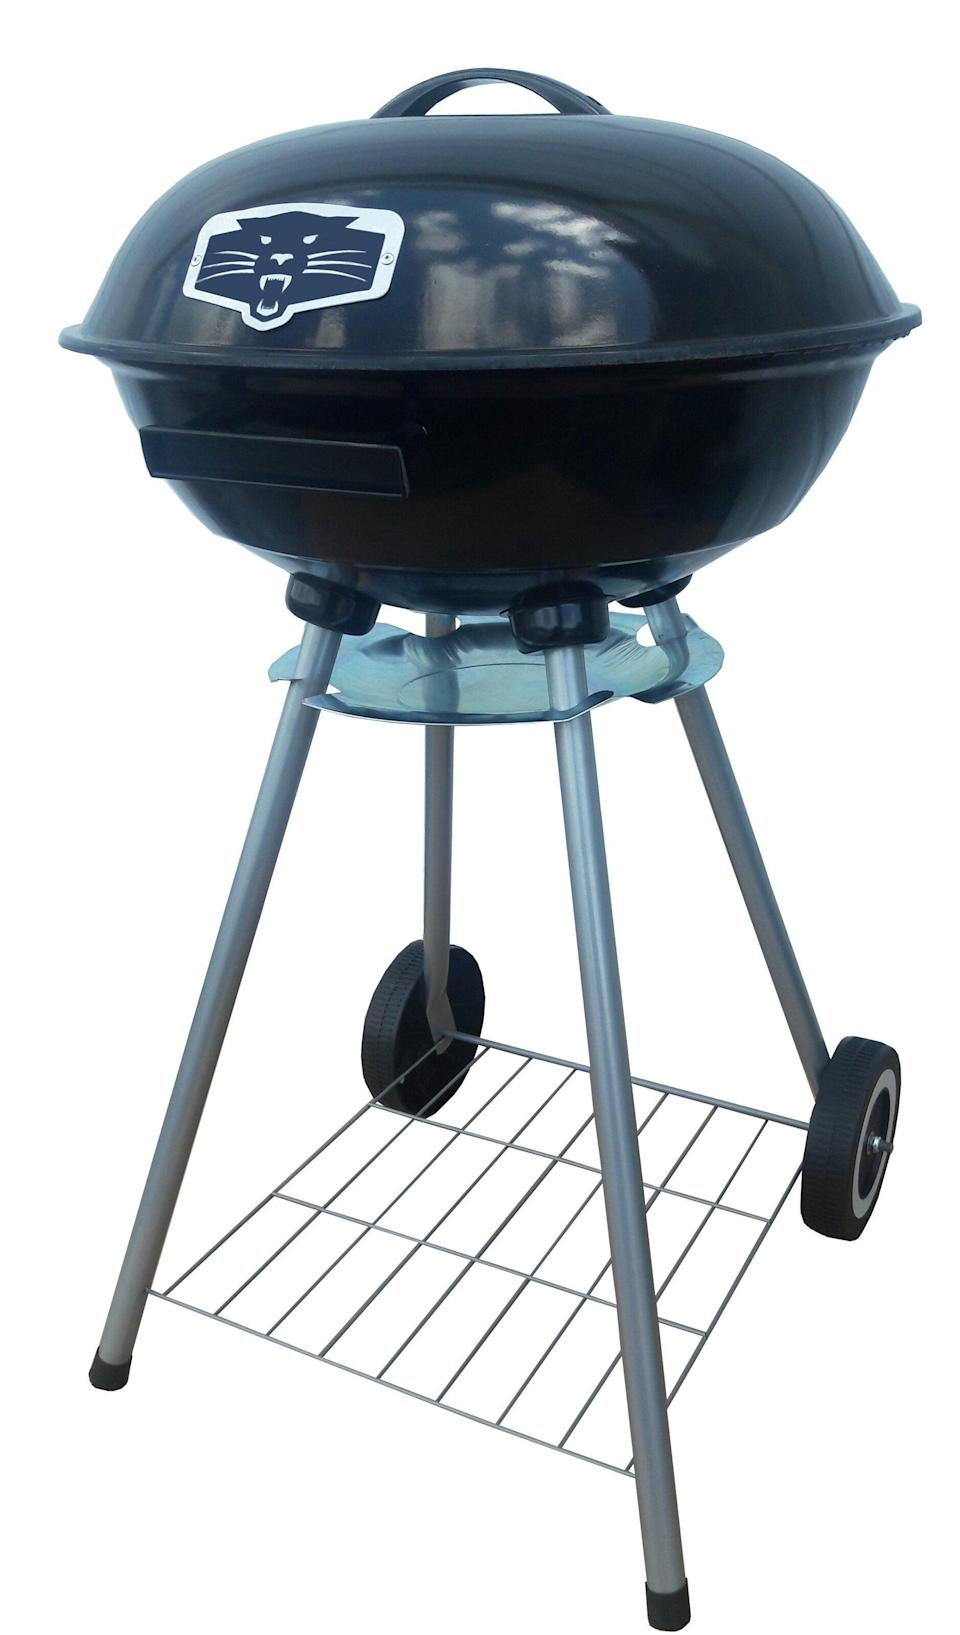 """<h2>Best Grill Under $50</h2><br><h3>PantherGrill 19"""" Kettle Charcoal Grill</h3><br><strong>The Hype</strong>: 4.3 out of 5 stars and 105 reviews on <a href=""""https://www.wayfair.com/outdoor/pdp/panthergrill-19-kettle-charcoal-grill-ptrg1000.html"""" rel=""""nofollow noopener"""" target=""""_blank"""" data-ylk=""""slk:Wayfair"""" class=""""link rapid-noclick-resp"""">Wayfair</a><br><br><strong>BBQ Buffs Say:</strong> """"Great grill for such a cheap price. I haven't used it much because charcoal is so inconvenient, but for $25 it works great and it will get those steaks cooked.""""<br><br><strong>PantherGrill</strong> 19"""" Kettle Charcoal Grill, $, available at <a href=""""https://go.skimresources.com/?id=30283X879131&url=https%3A%2F%2Fwww.wayfair.com%2Foutdoor%2Fpdp%2Fpanthergrill-19-kettle-charcoal-grill-ptrg1000.html"""" rel=""""nofollow noopener"""" target=""""_blank"""" data-ylk=""""slk:Wayfair"""" class=""""link rapid-noclick-resp"""">Wayfair</a>"""